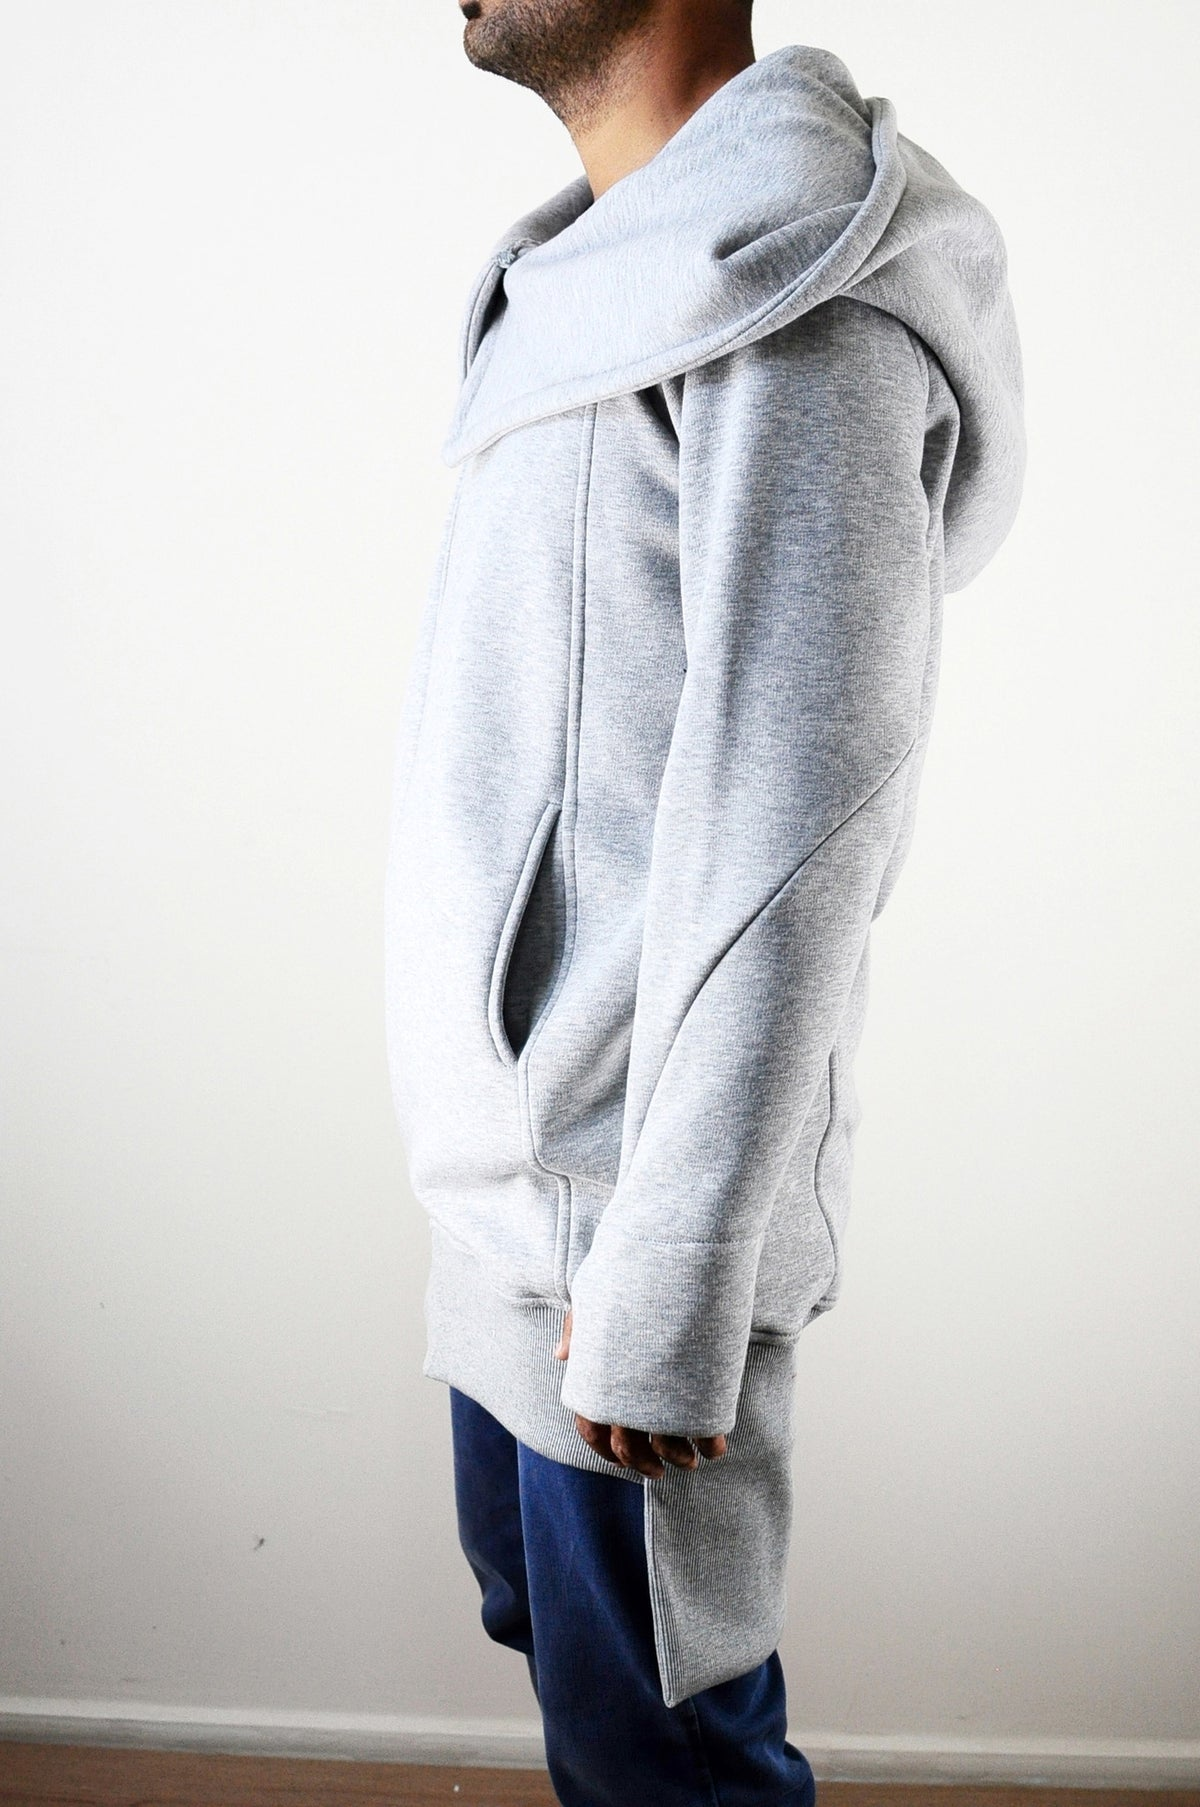 Winter Essentials Oversized Hood Long Sleeve Hoodie // Raw Edges at Sleeve Cuffs // Avant Garde Over long Assasian CREED Hoodie